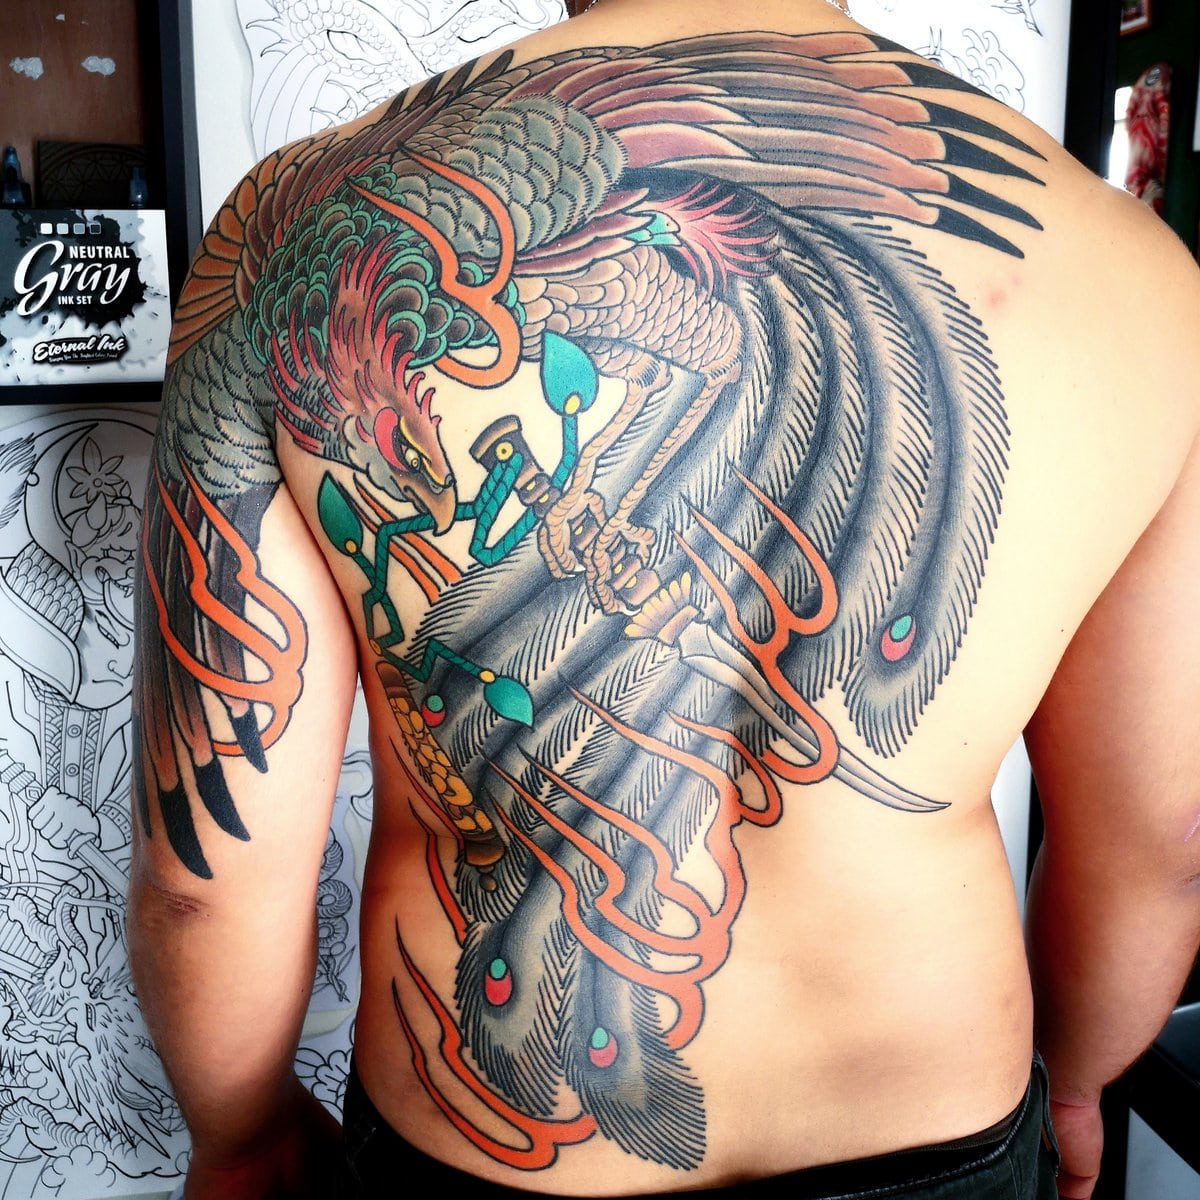 ghis-melou-tattoo-neotraditional-back-color